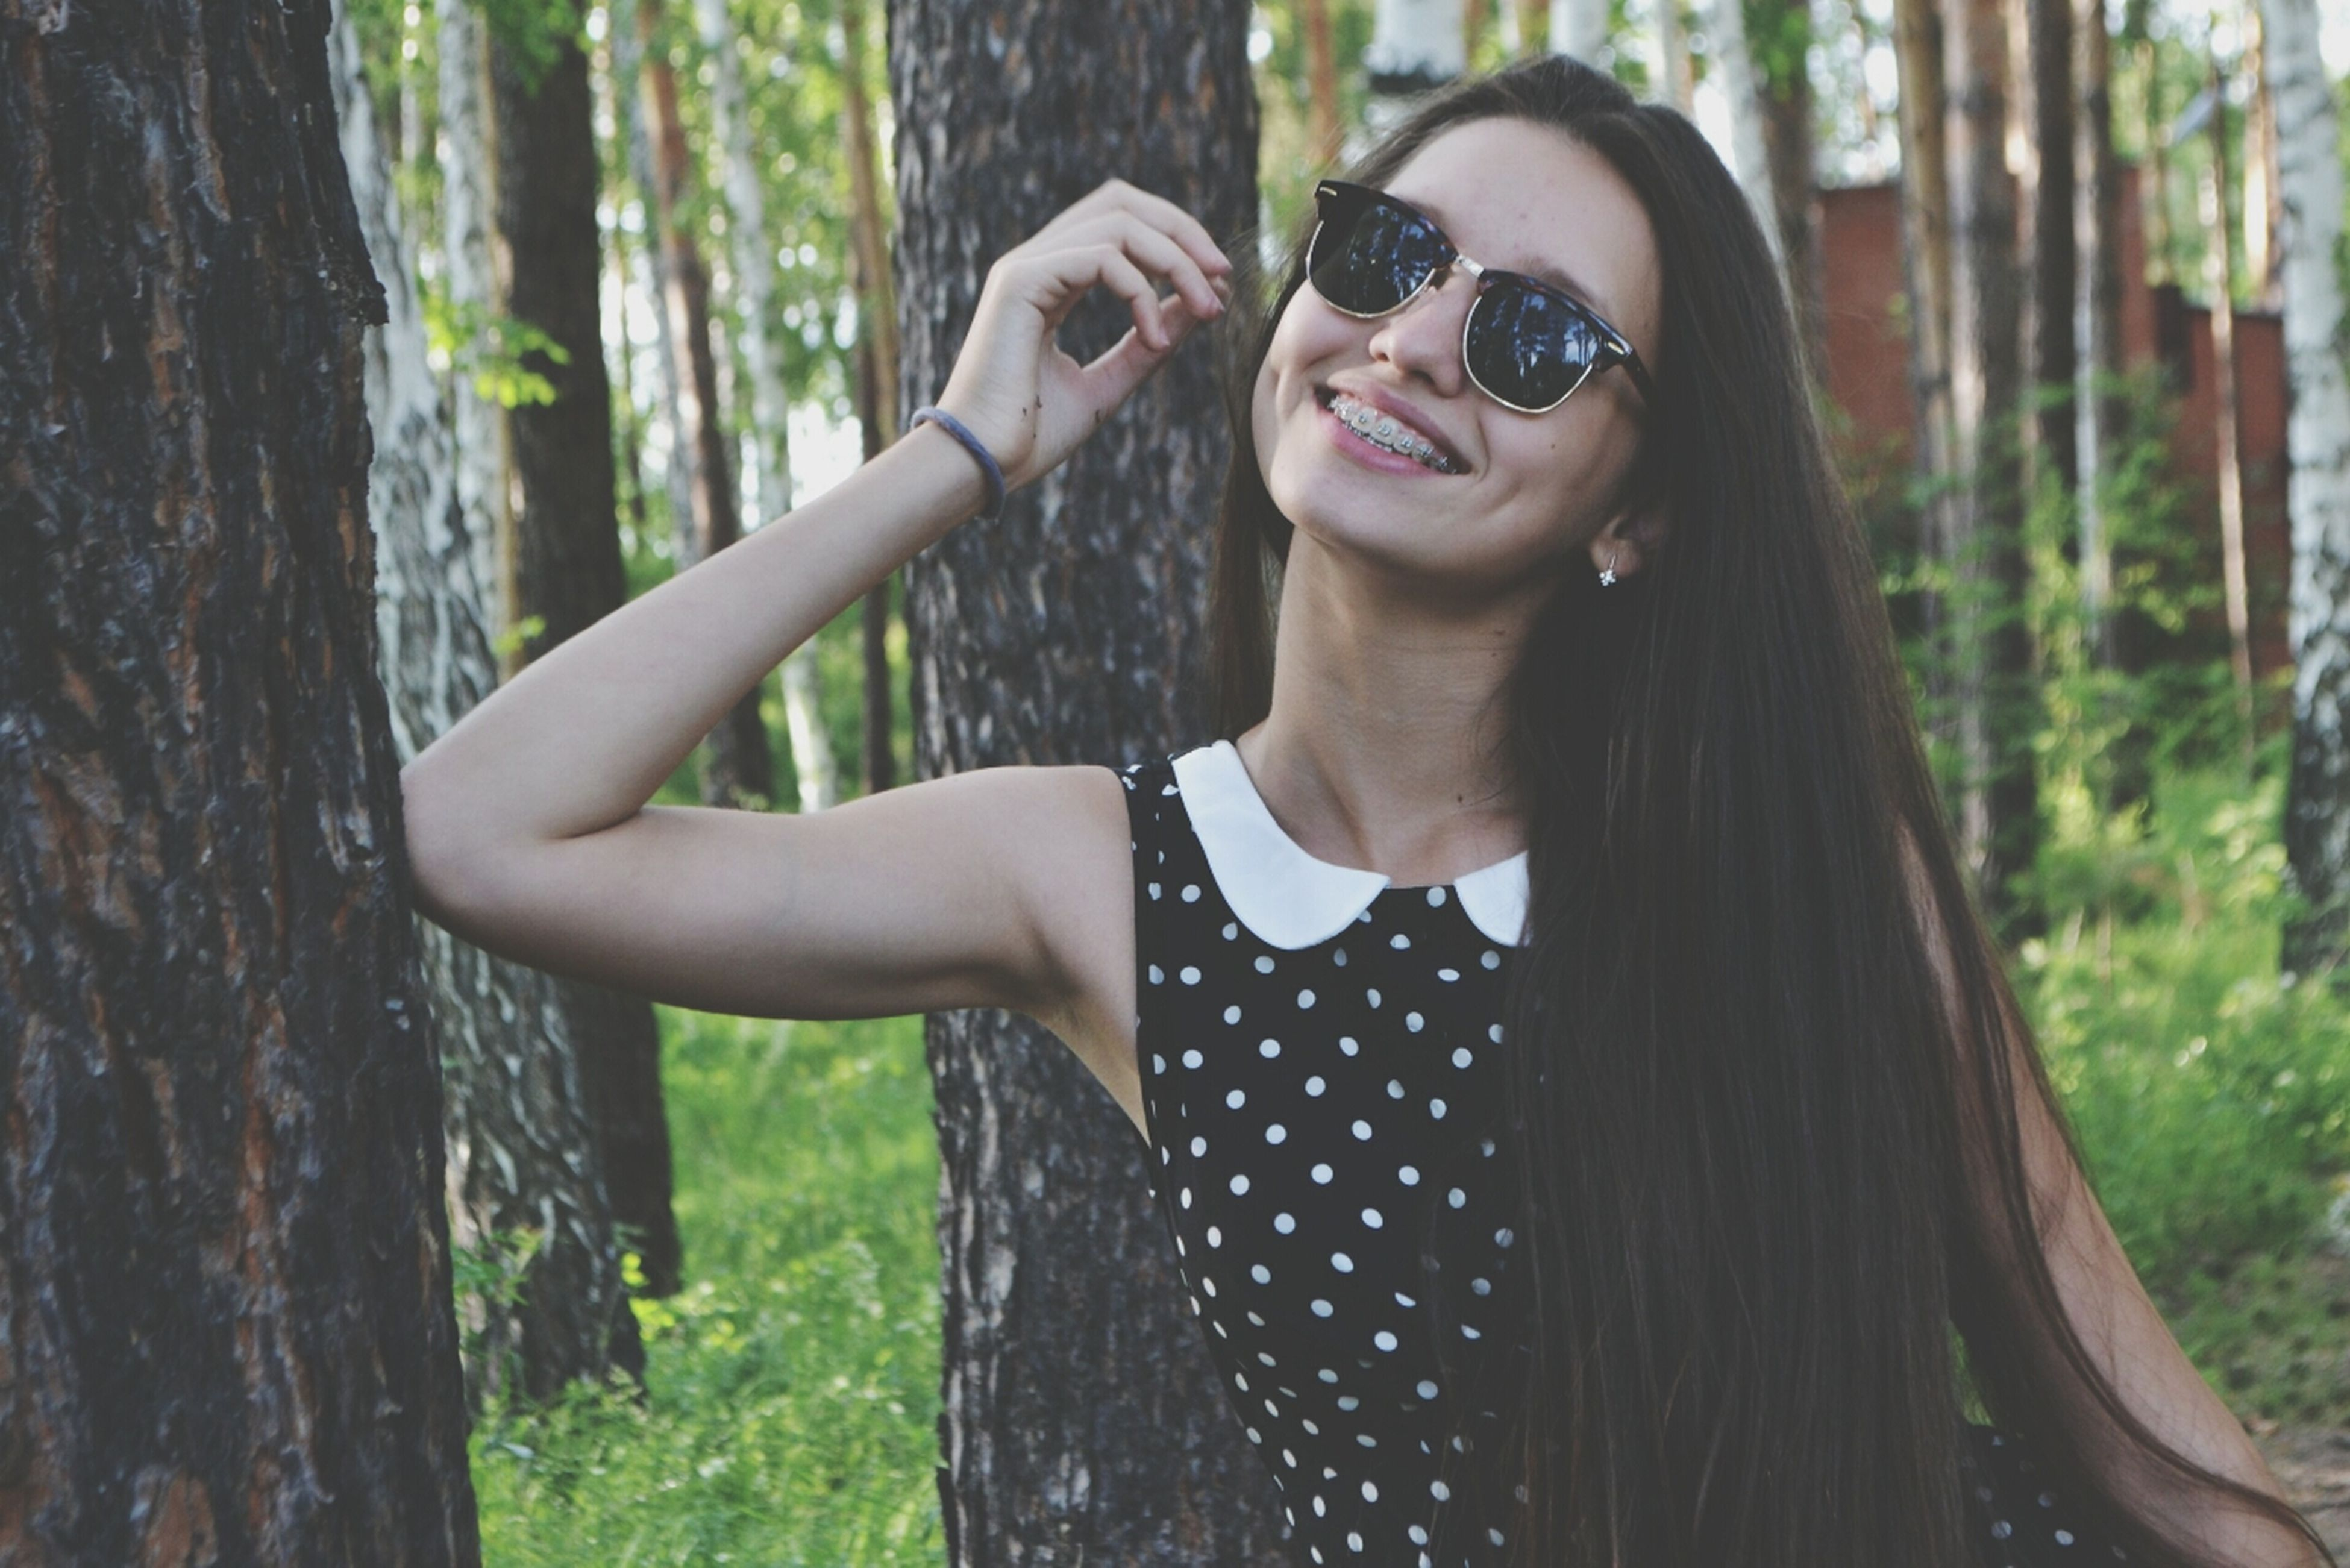 lifestyles, person, tree, young adult, leisure activity, holding, young women, casual clothing, front view, tree trunk, looking at camera, focus on foreground, portrait, smiling, waist up, forest, happiness